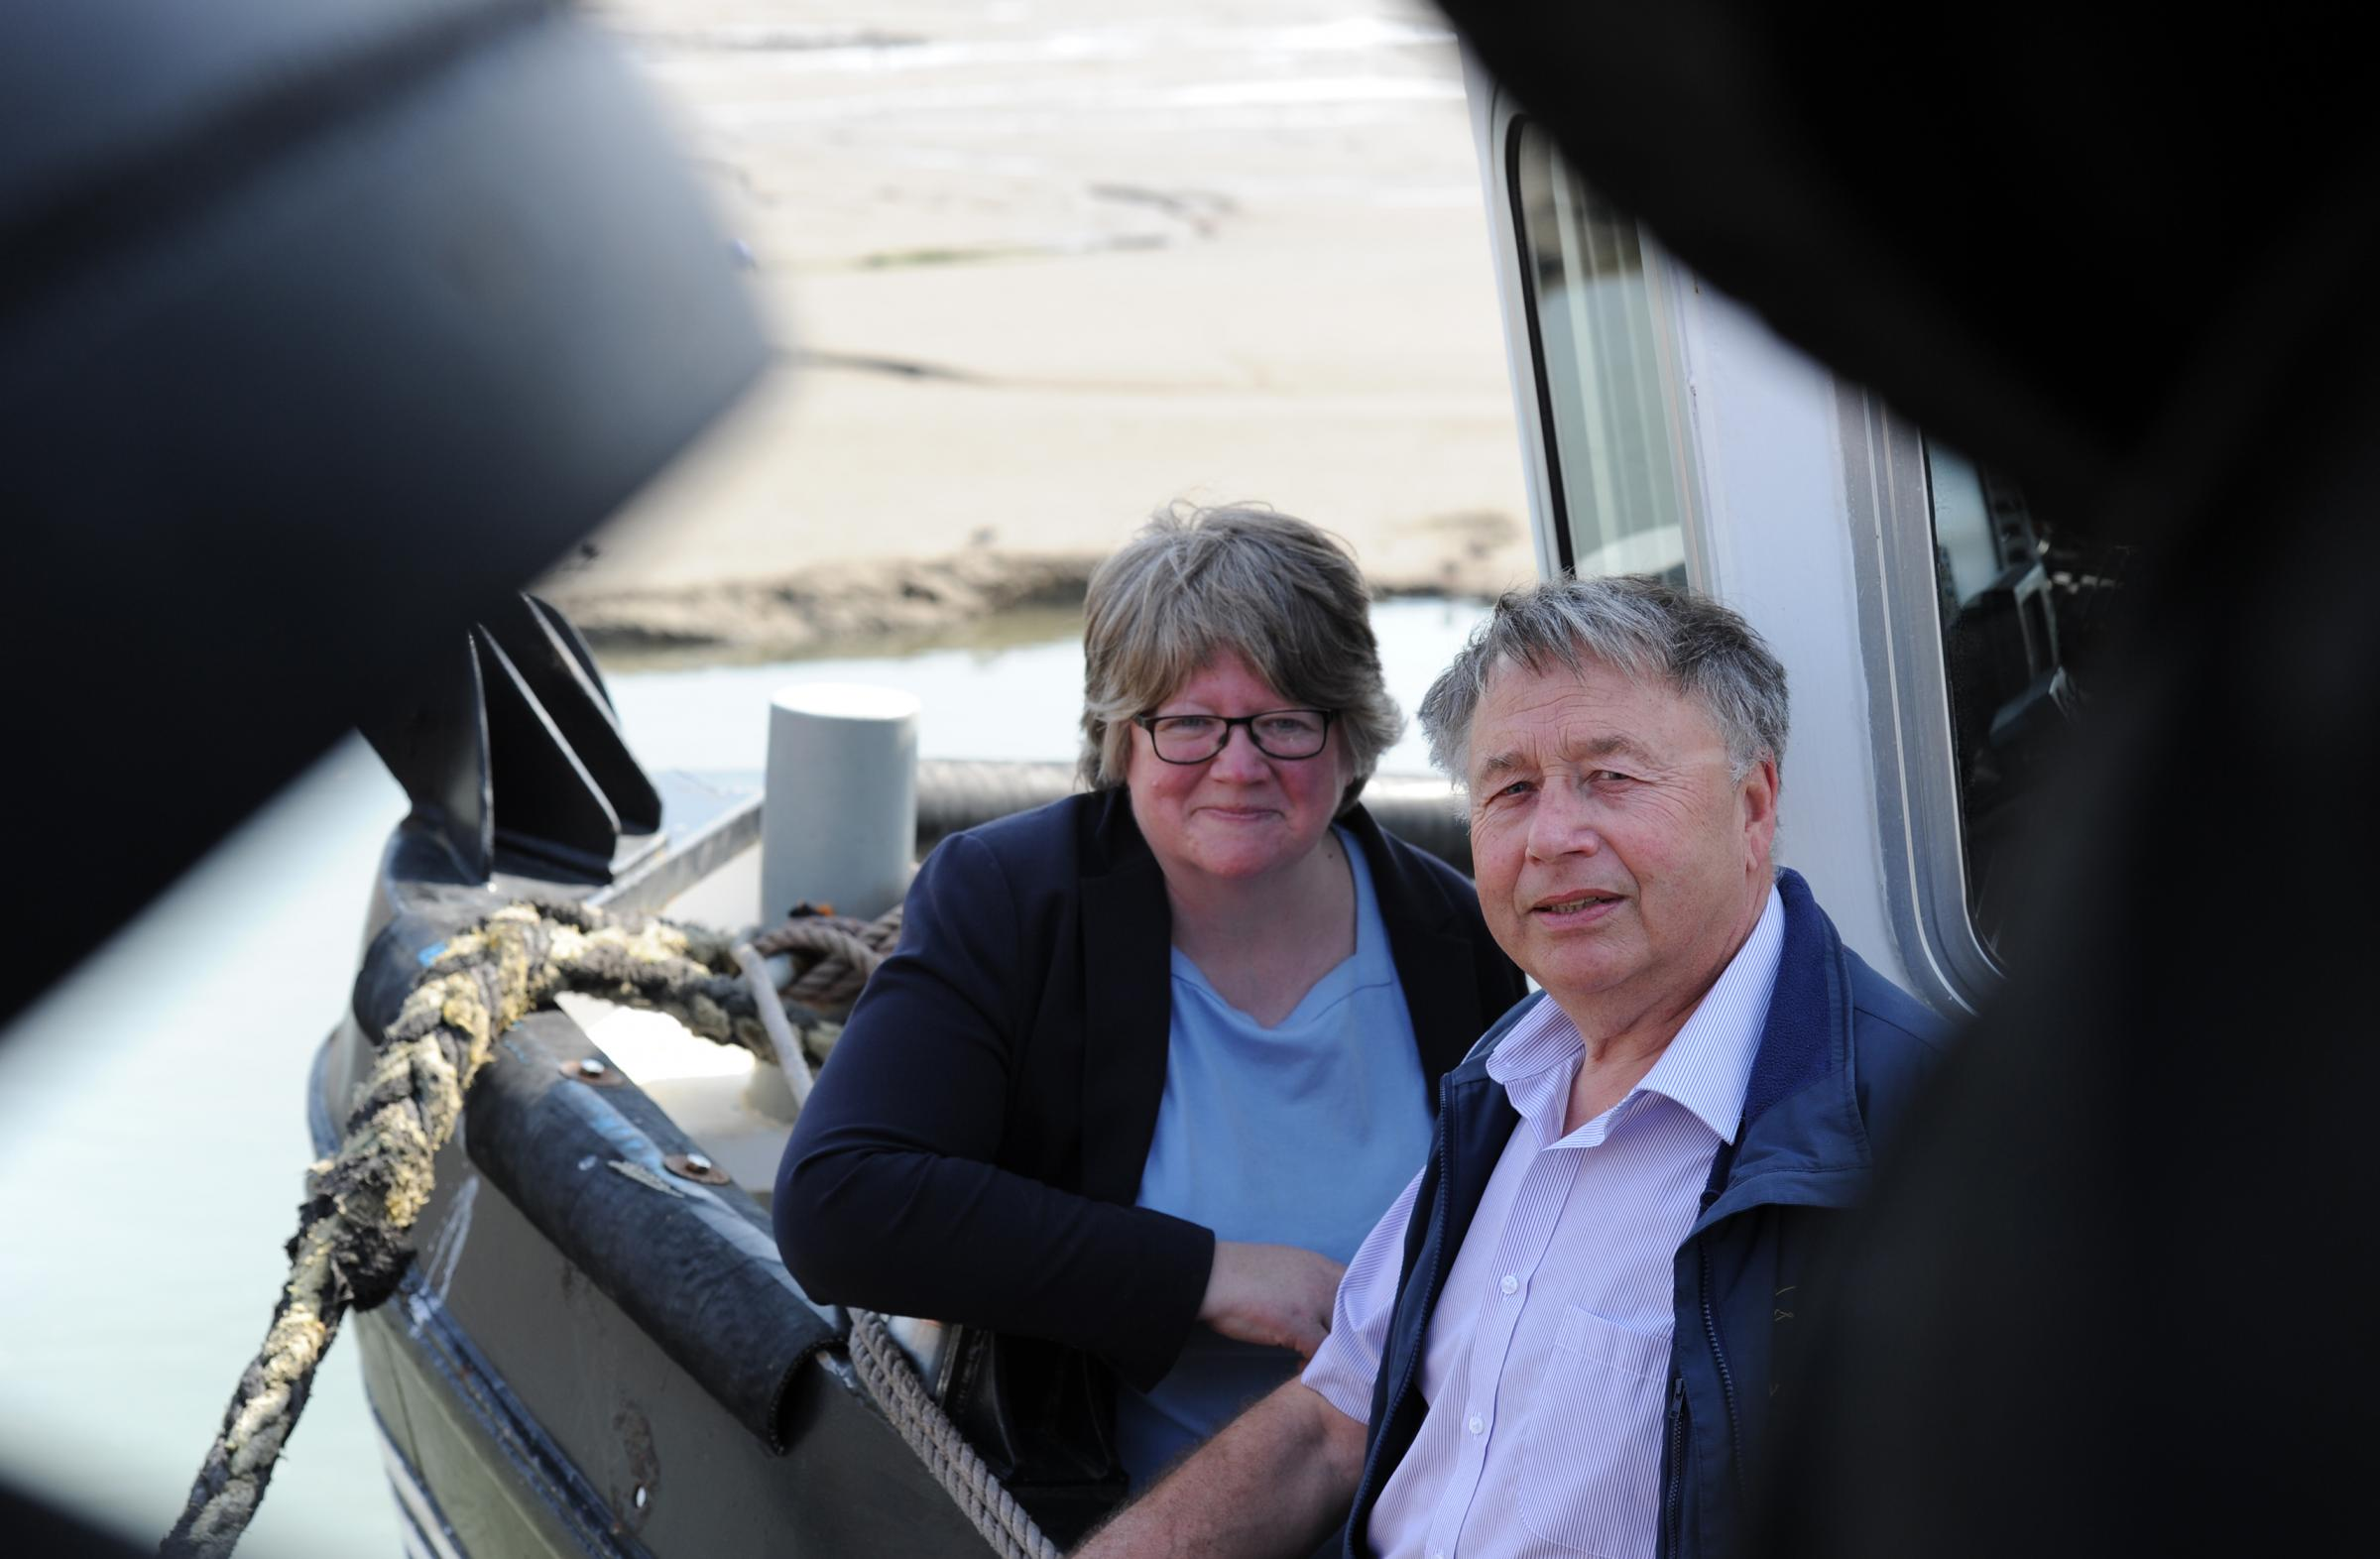 Old Leigh.Minister Therese Coffey with local fisherman Paul Gilson. Picture Steve O'Connell 21-04-18